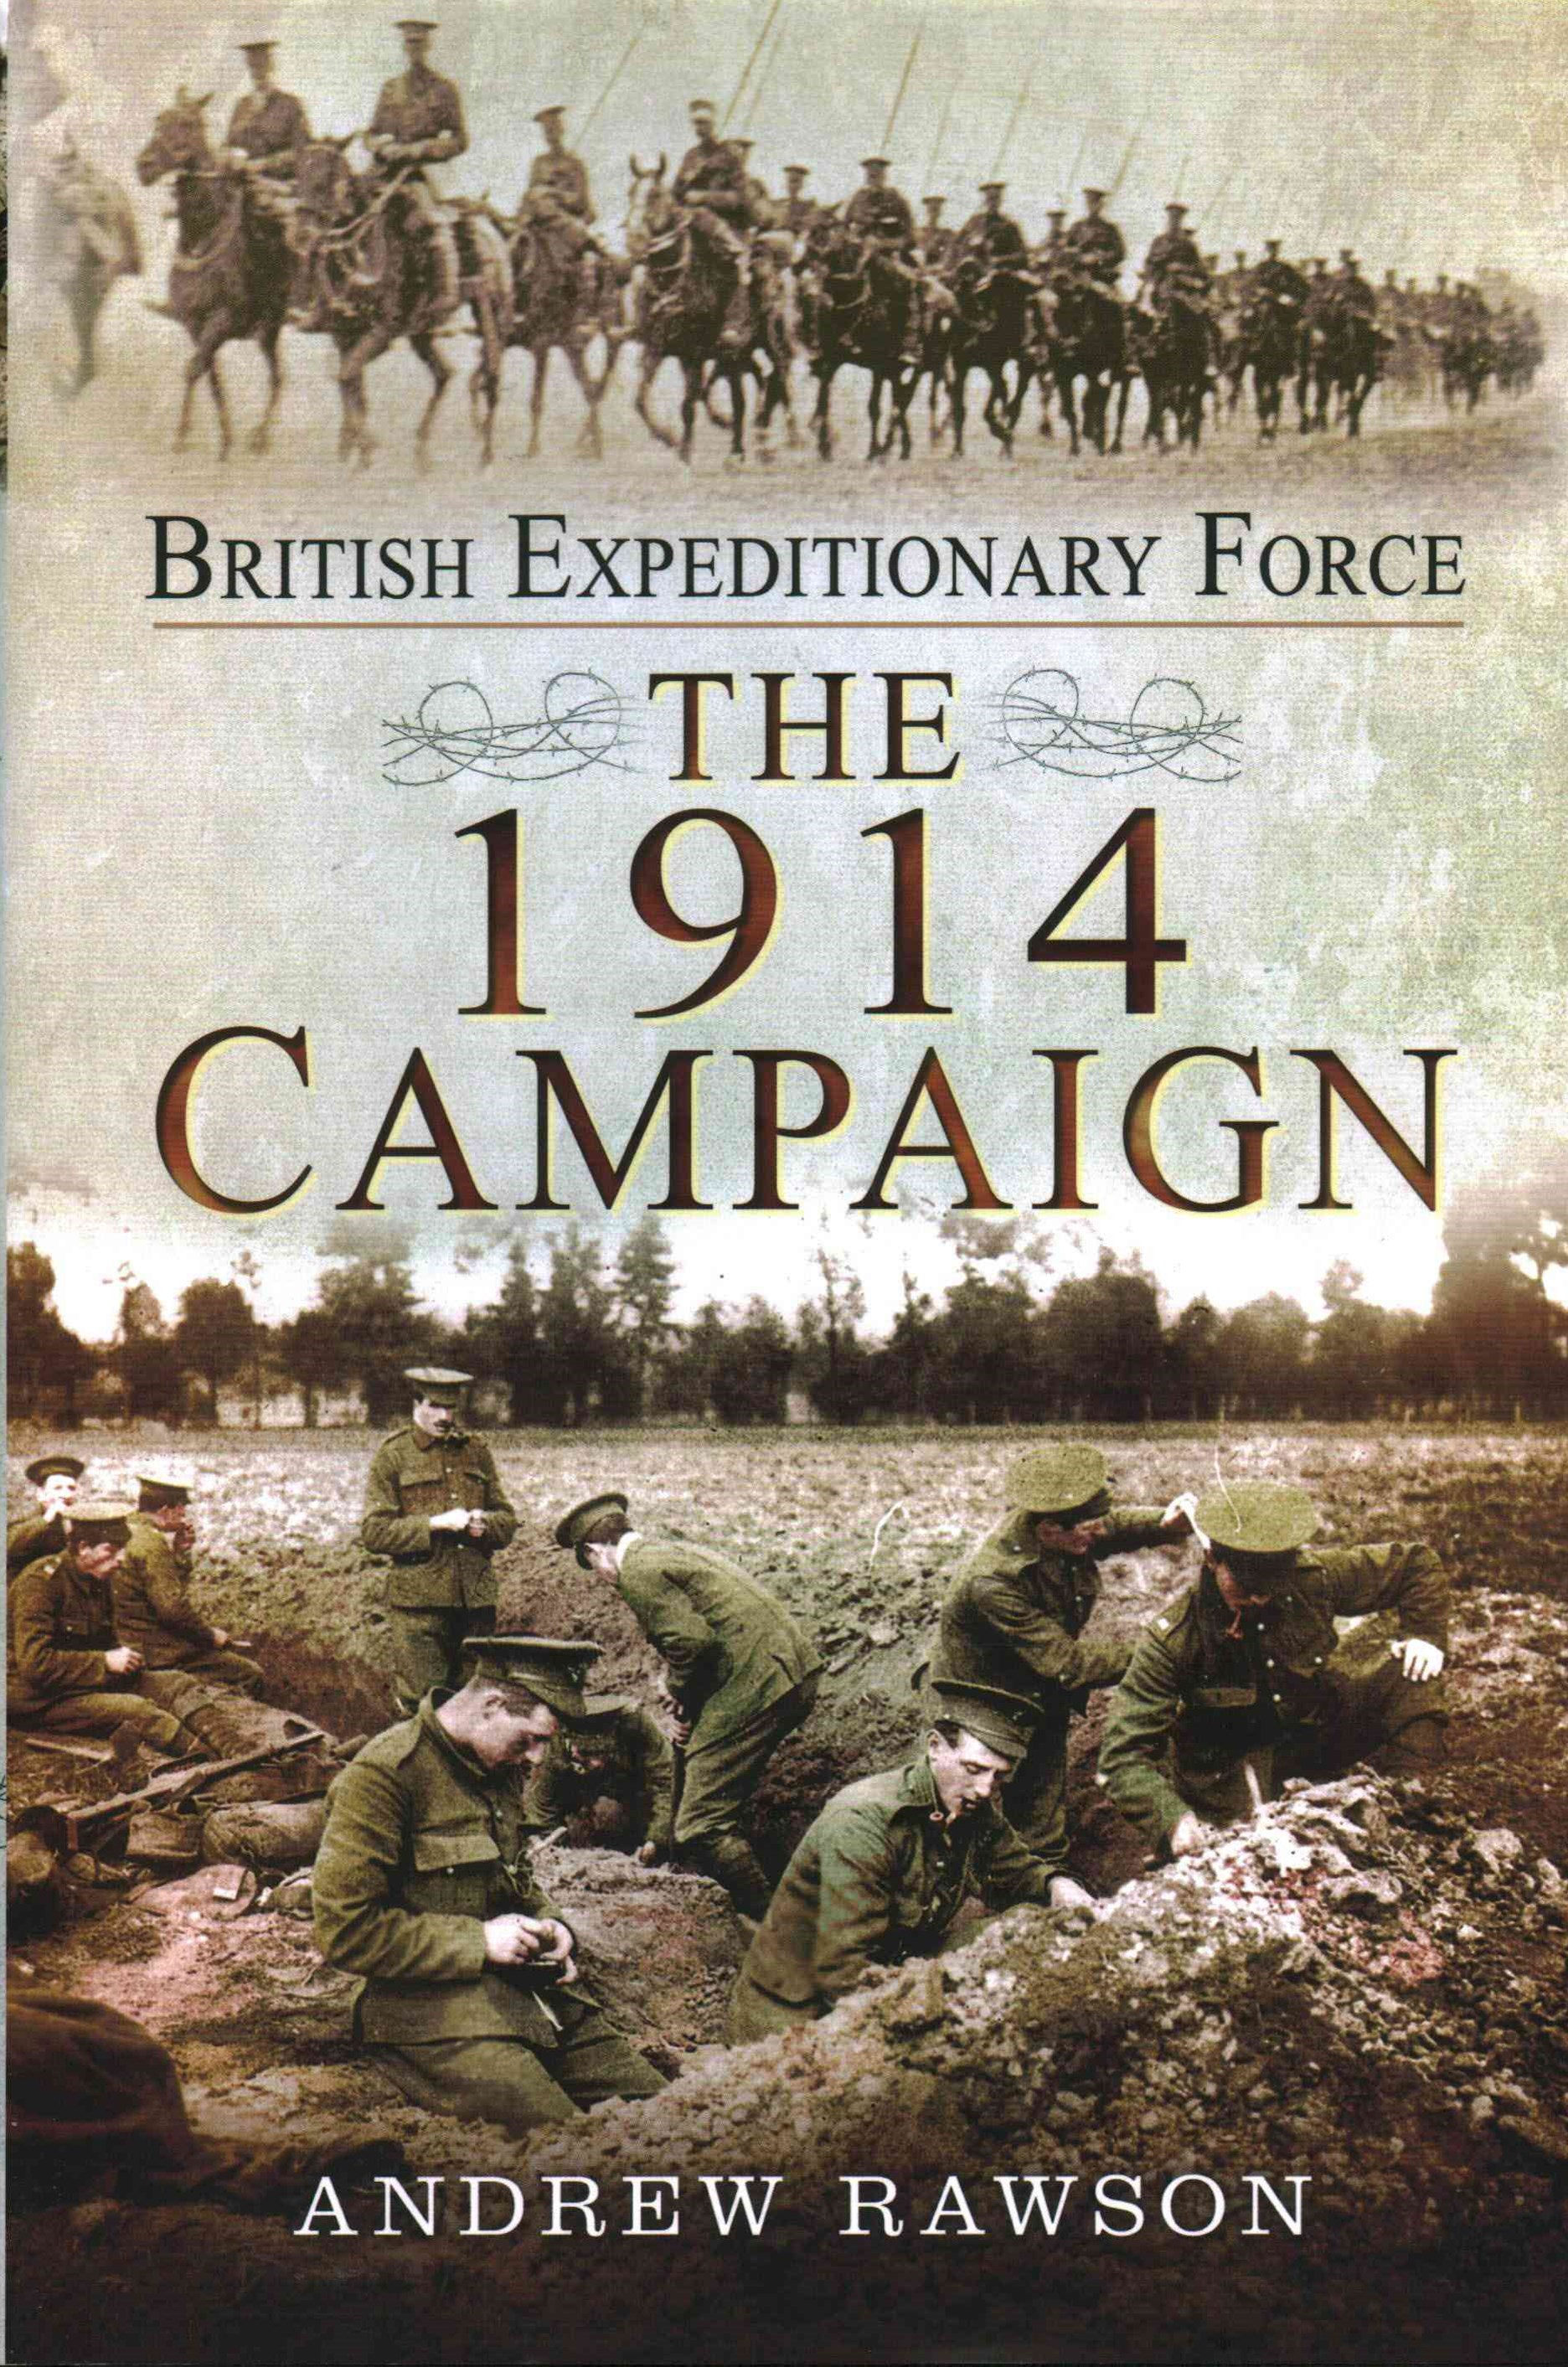 British Expeditionary Force: The 1914 Campaign